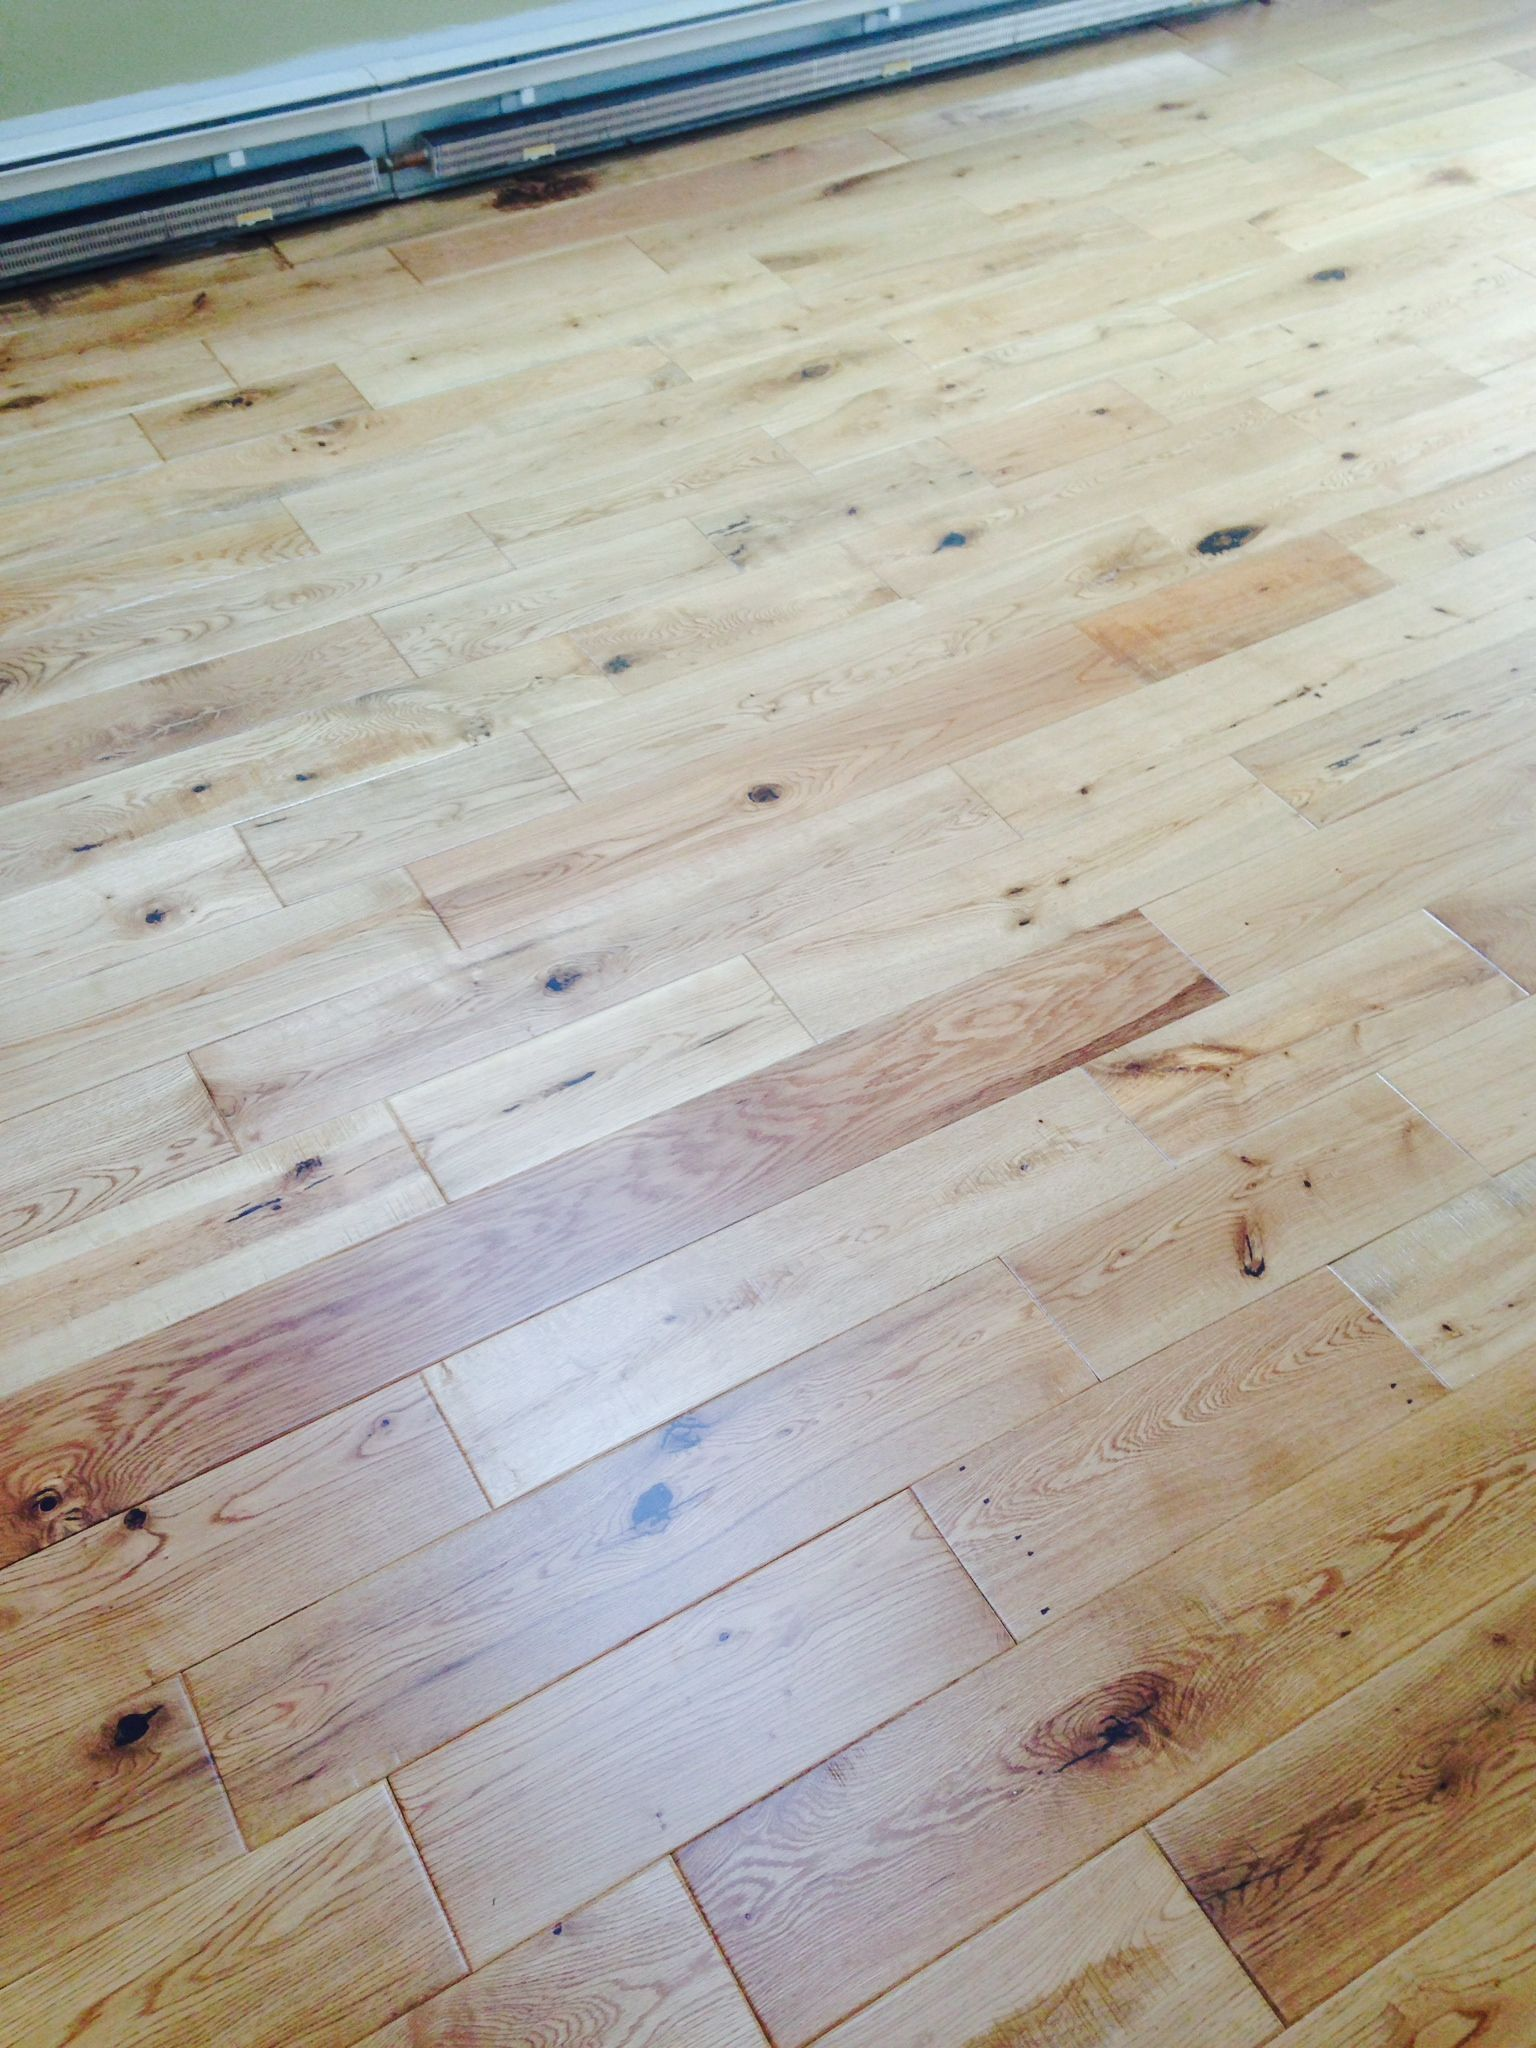 ideas pictures natural of youtube xyz white floors photo hardwood download archaicawfultural oak flooring